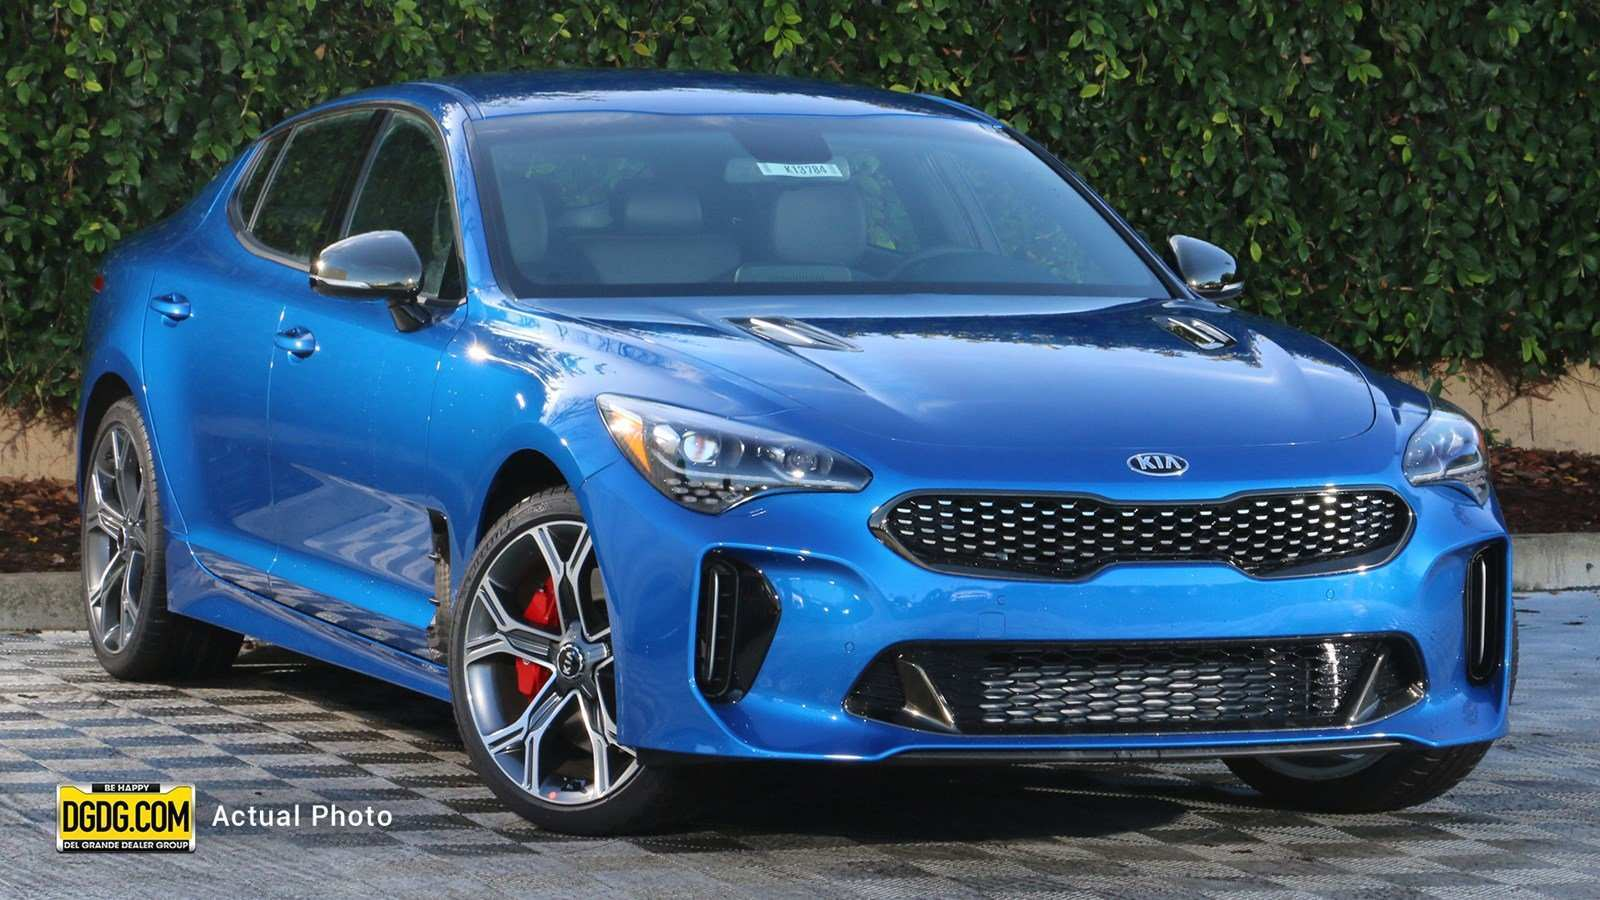 67 Great 2019 Kia Gt Stinger Engine for 2019 Kia Gt Stinger